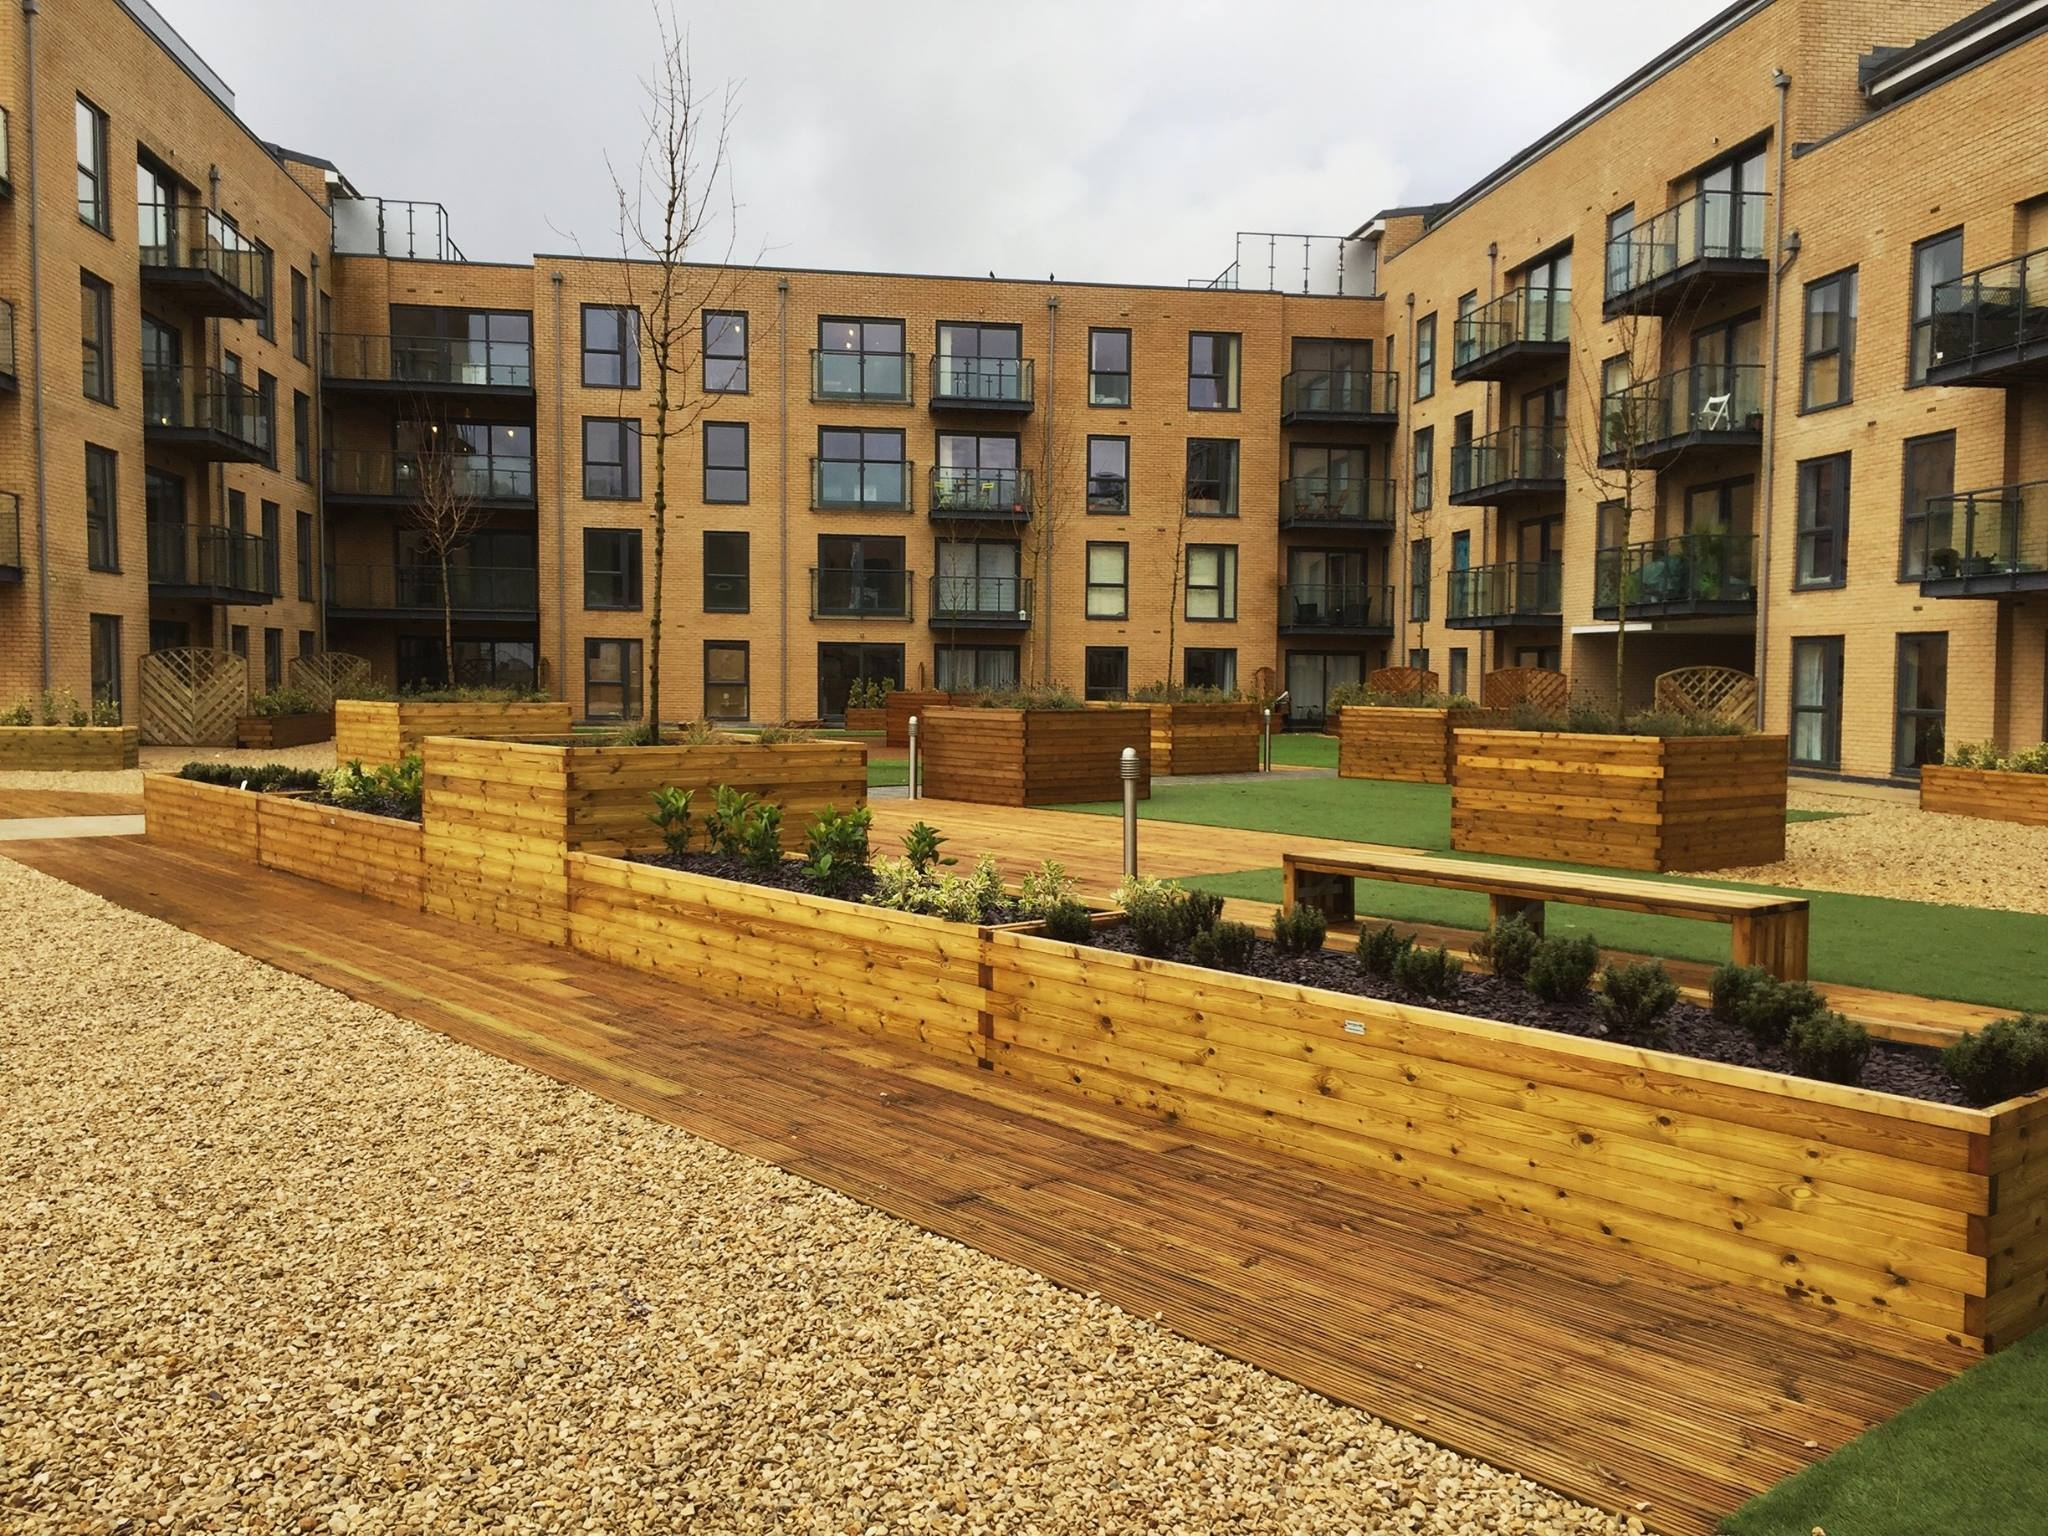 Bellway Homes communal area with high quality planters